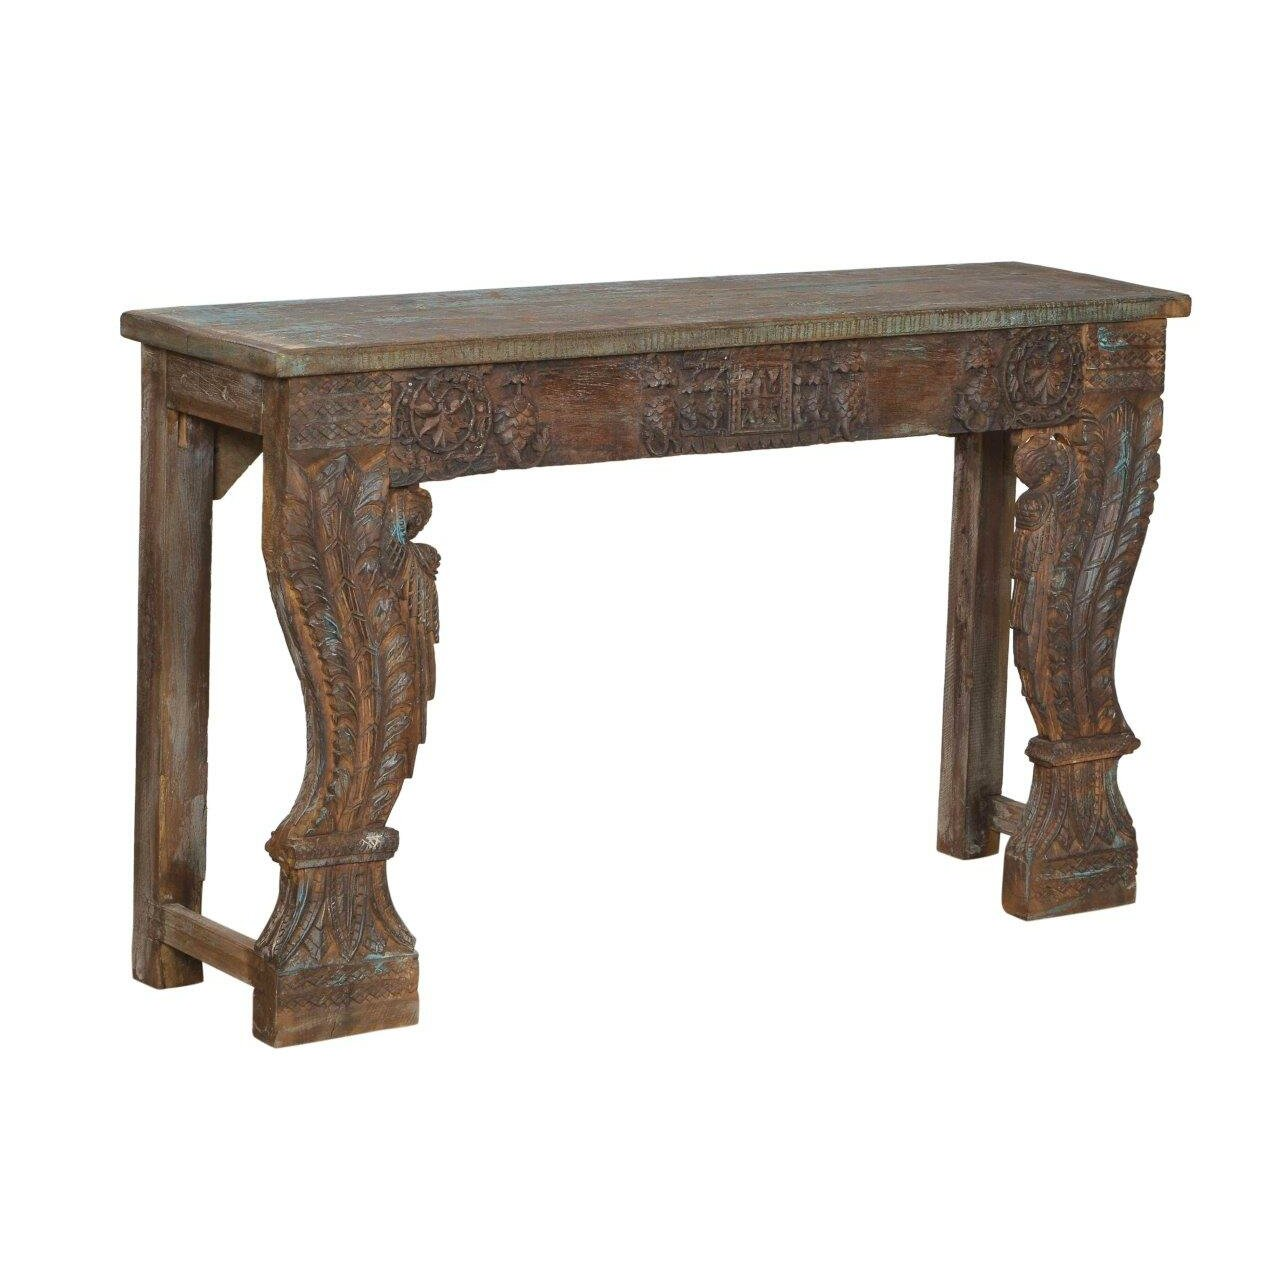 moti furniture burbank console table wayfair. Black Bedroom Furniture Sets. Home Design Ideas